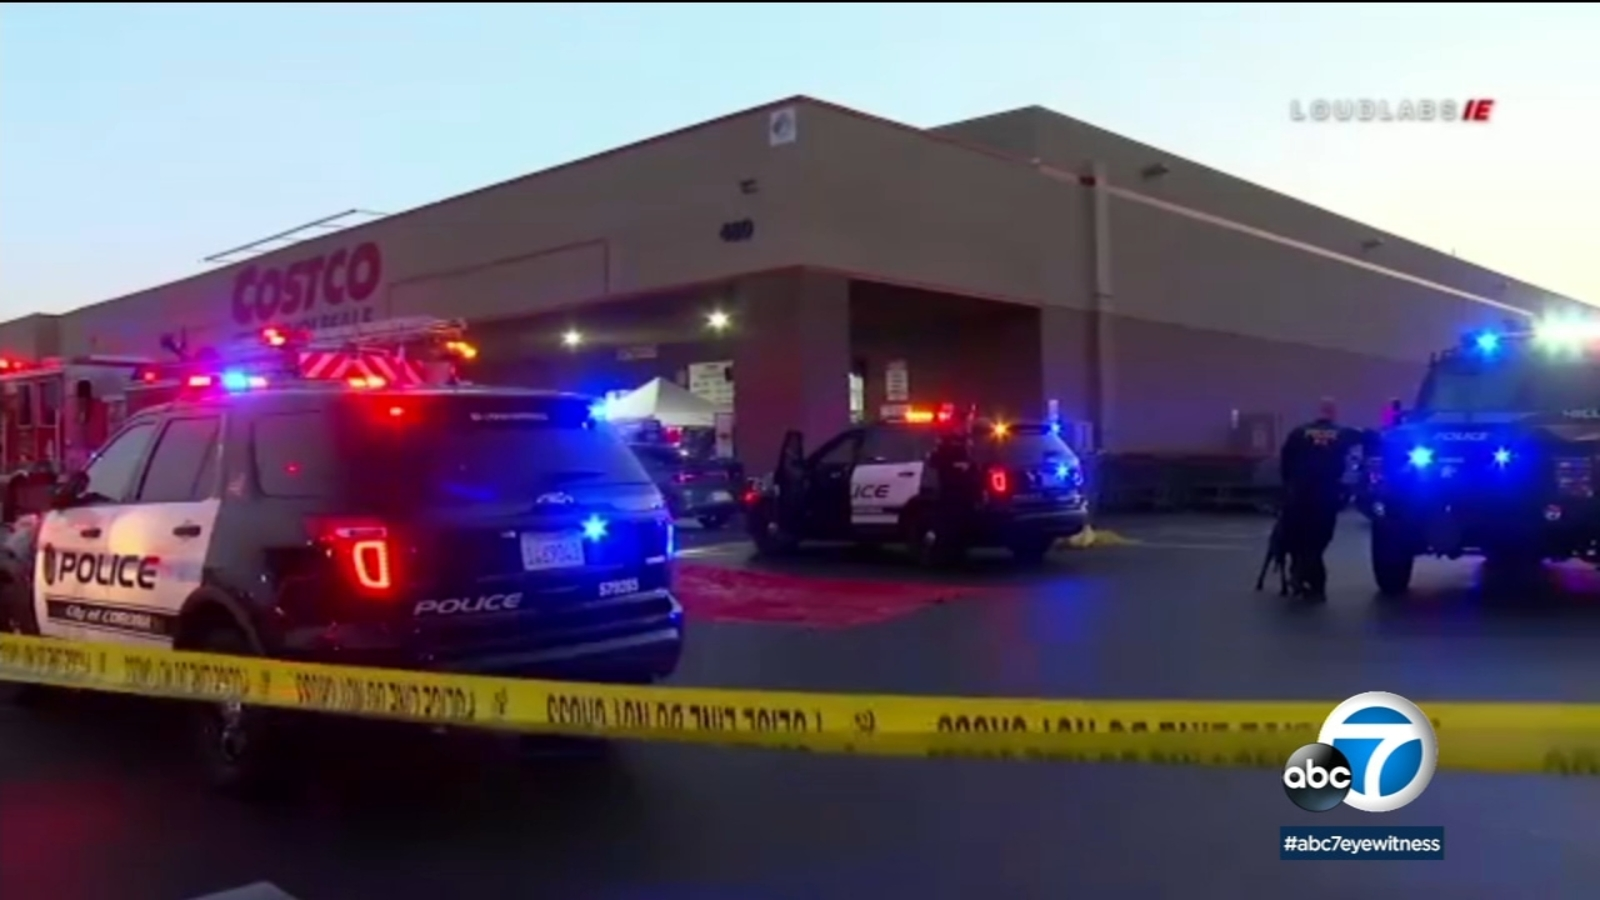 Corona Costco shooting: LAPD releases name of off-duty officer involved in incident